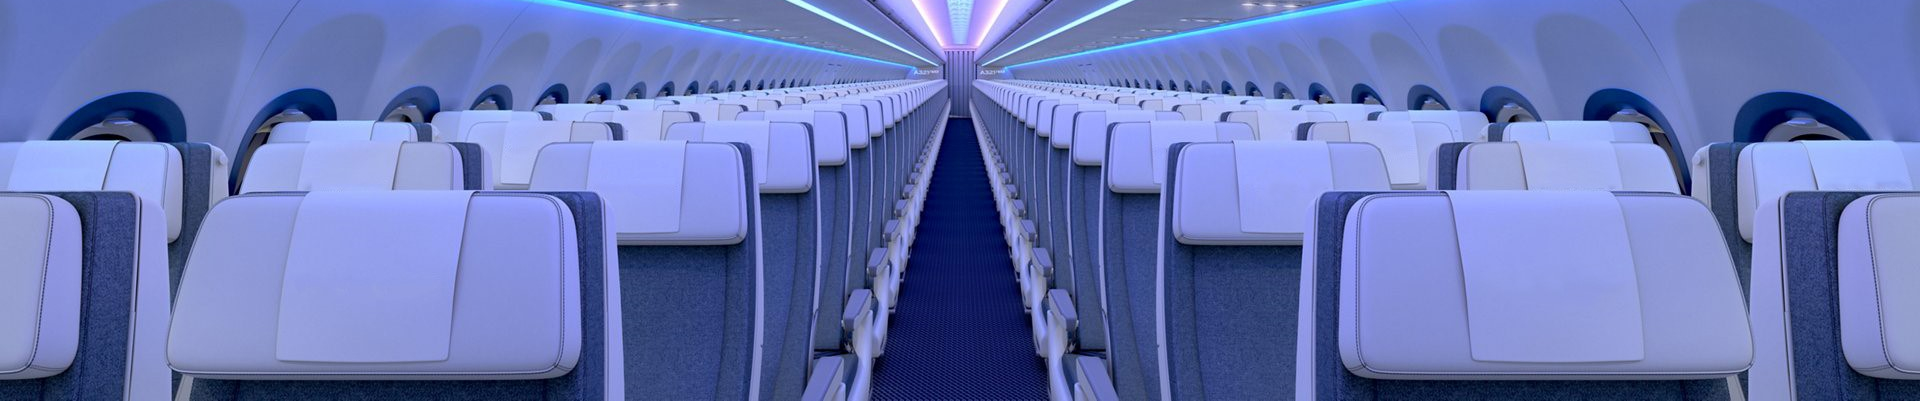 Aero Biotek makes airline travel safe using hospital grade UVC light